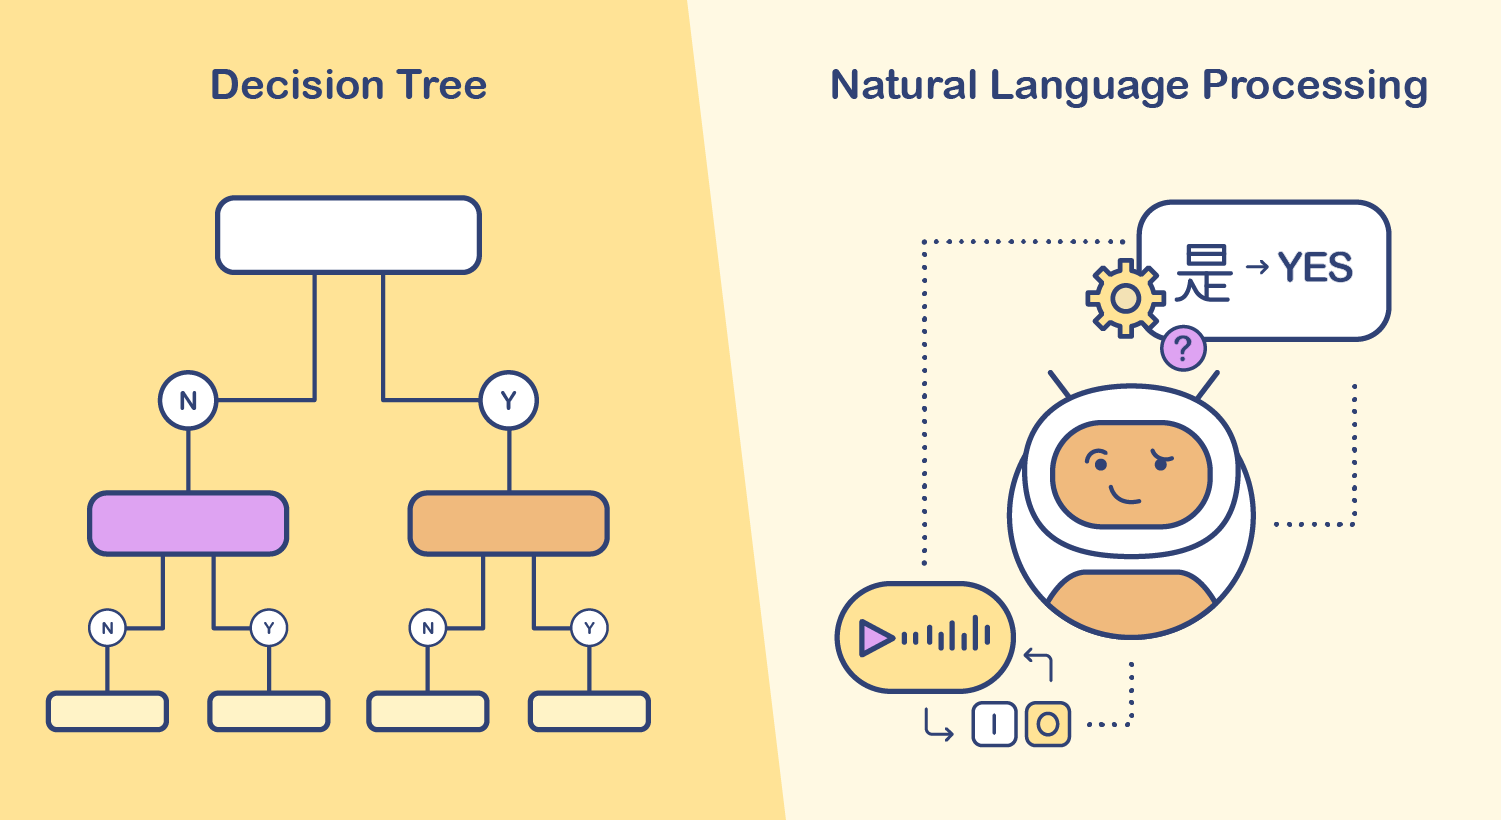 Decision Tree Vs Natural Language Processing: What Chatbot Type Is Better?